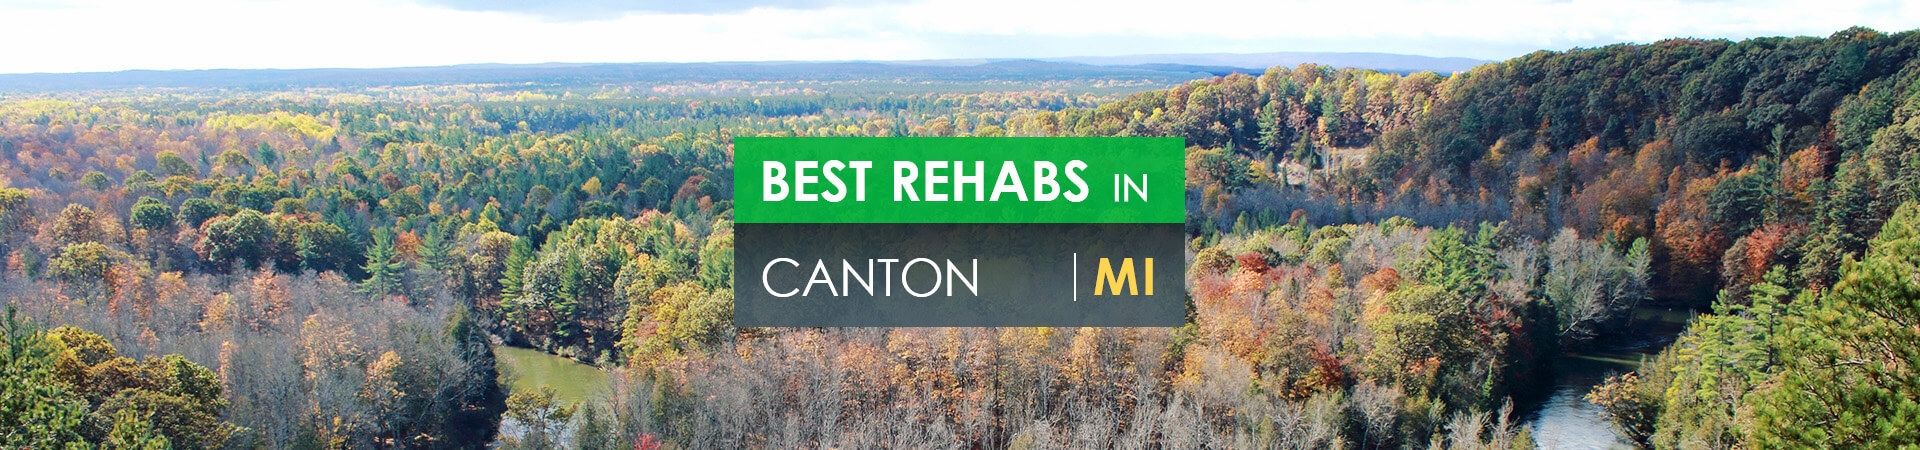 Best rehabs in Canton, MI